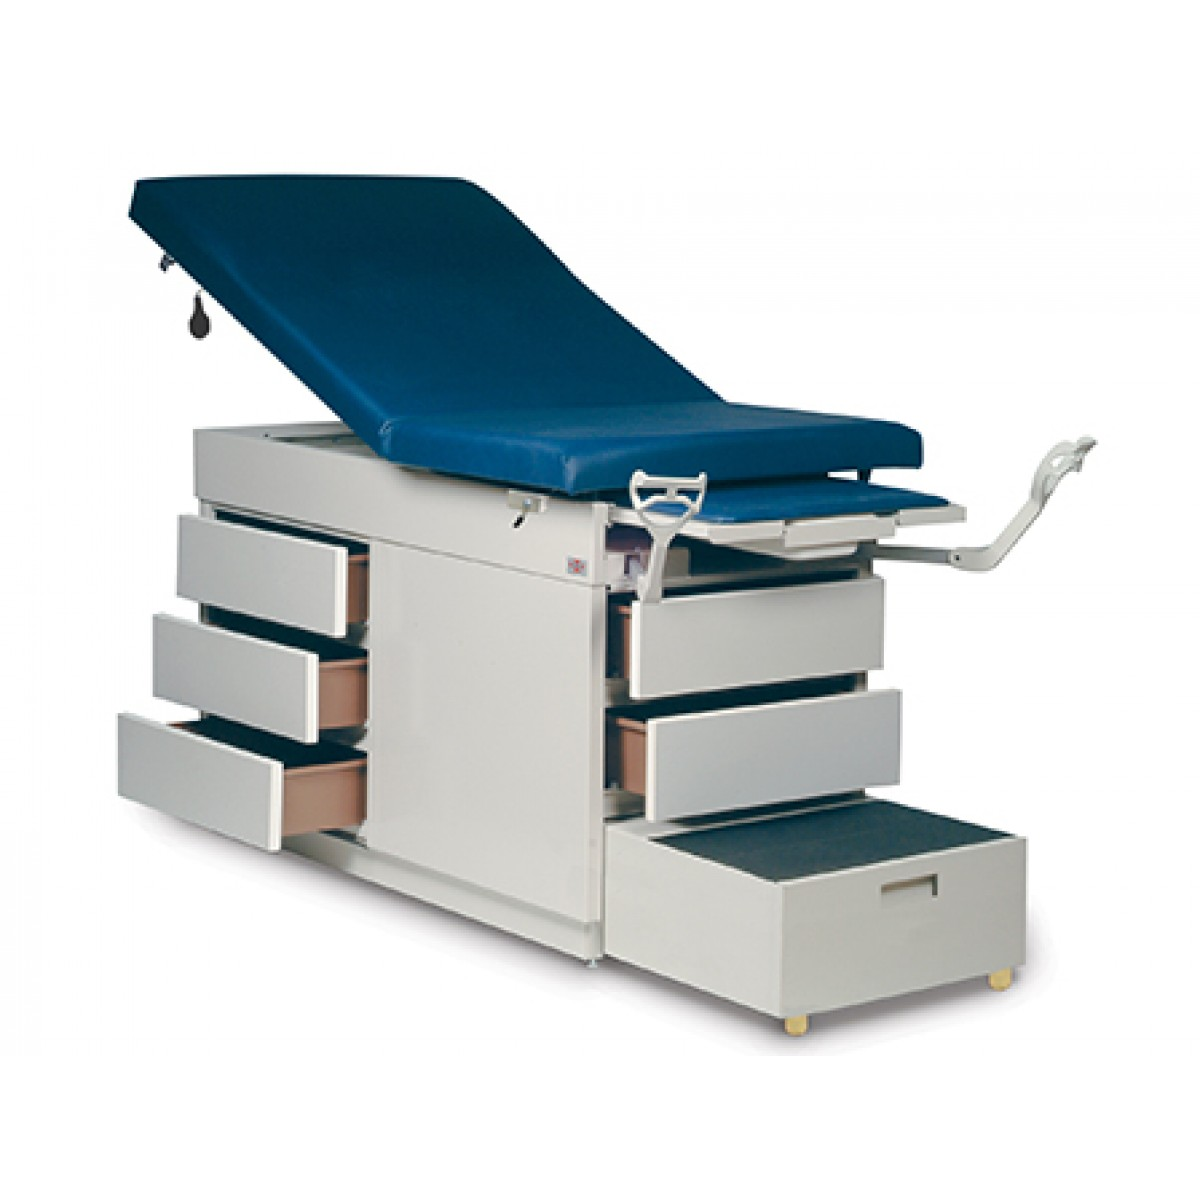 Hausmann 4412 Medical Exam Table. Unusual Knobs For Drawers. Kids Wood Desk. 3 Drawer Filing Cabinet. Iron Drawer. Metal Desk Accessories. Black Sofa Table. Long Dining Room Table. Desk Chair Cushion